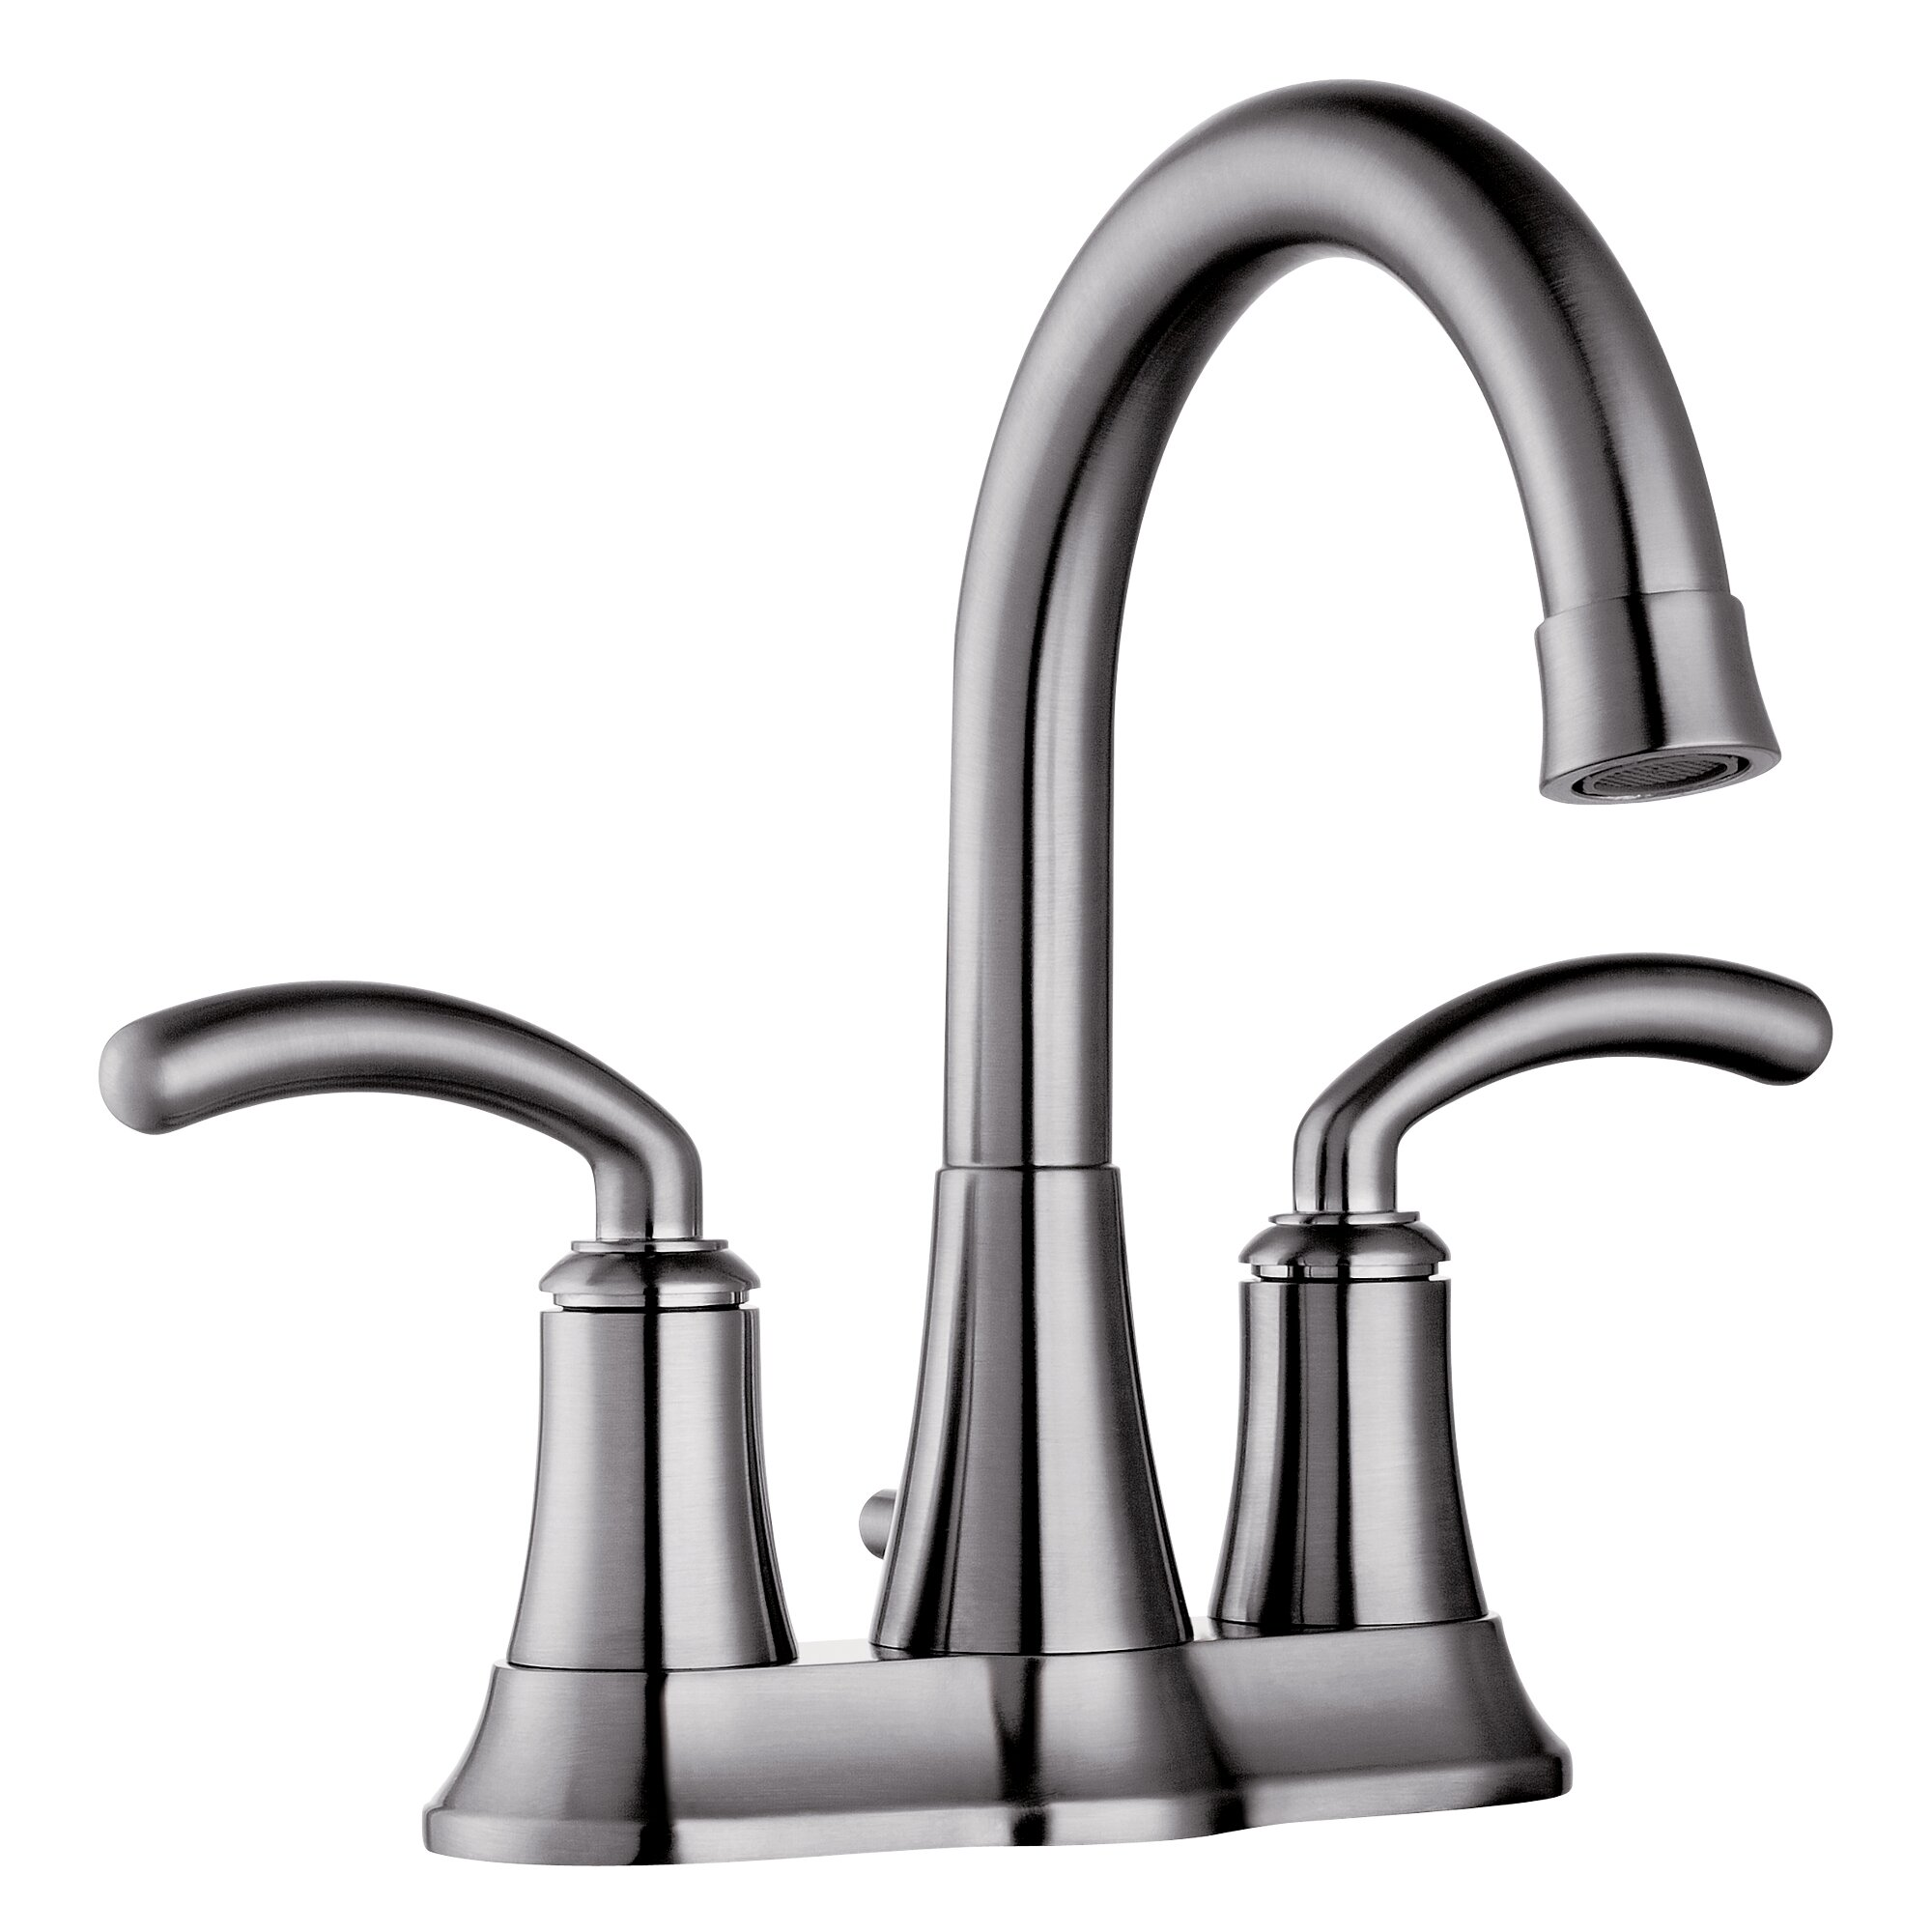 Yosemite home decor faucets 2 handle centerset faucet standard bathroom faucet with pop up drain - Decorative bathroom faucets ...